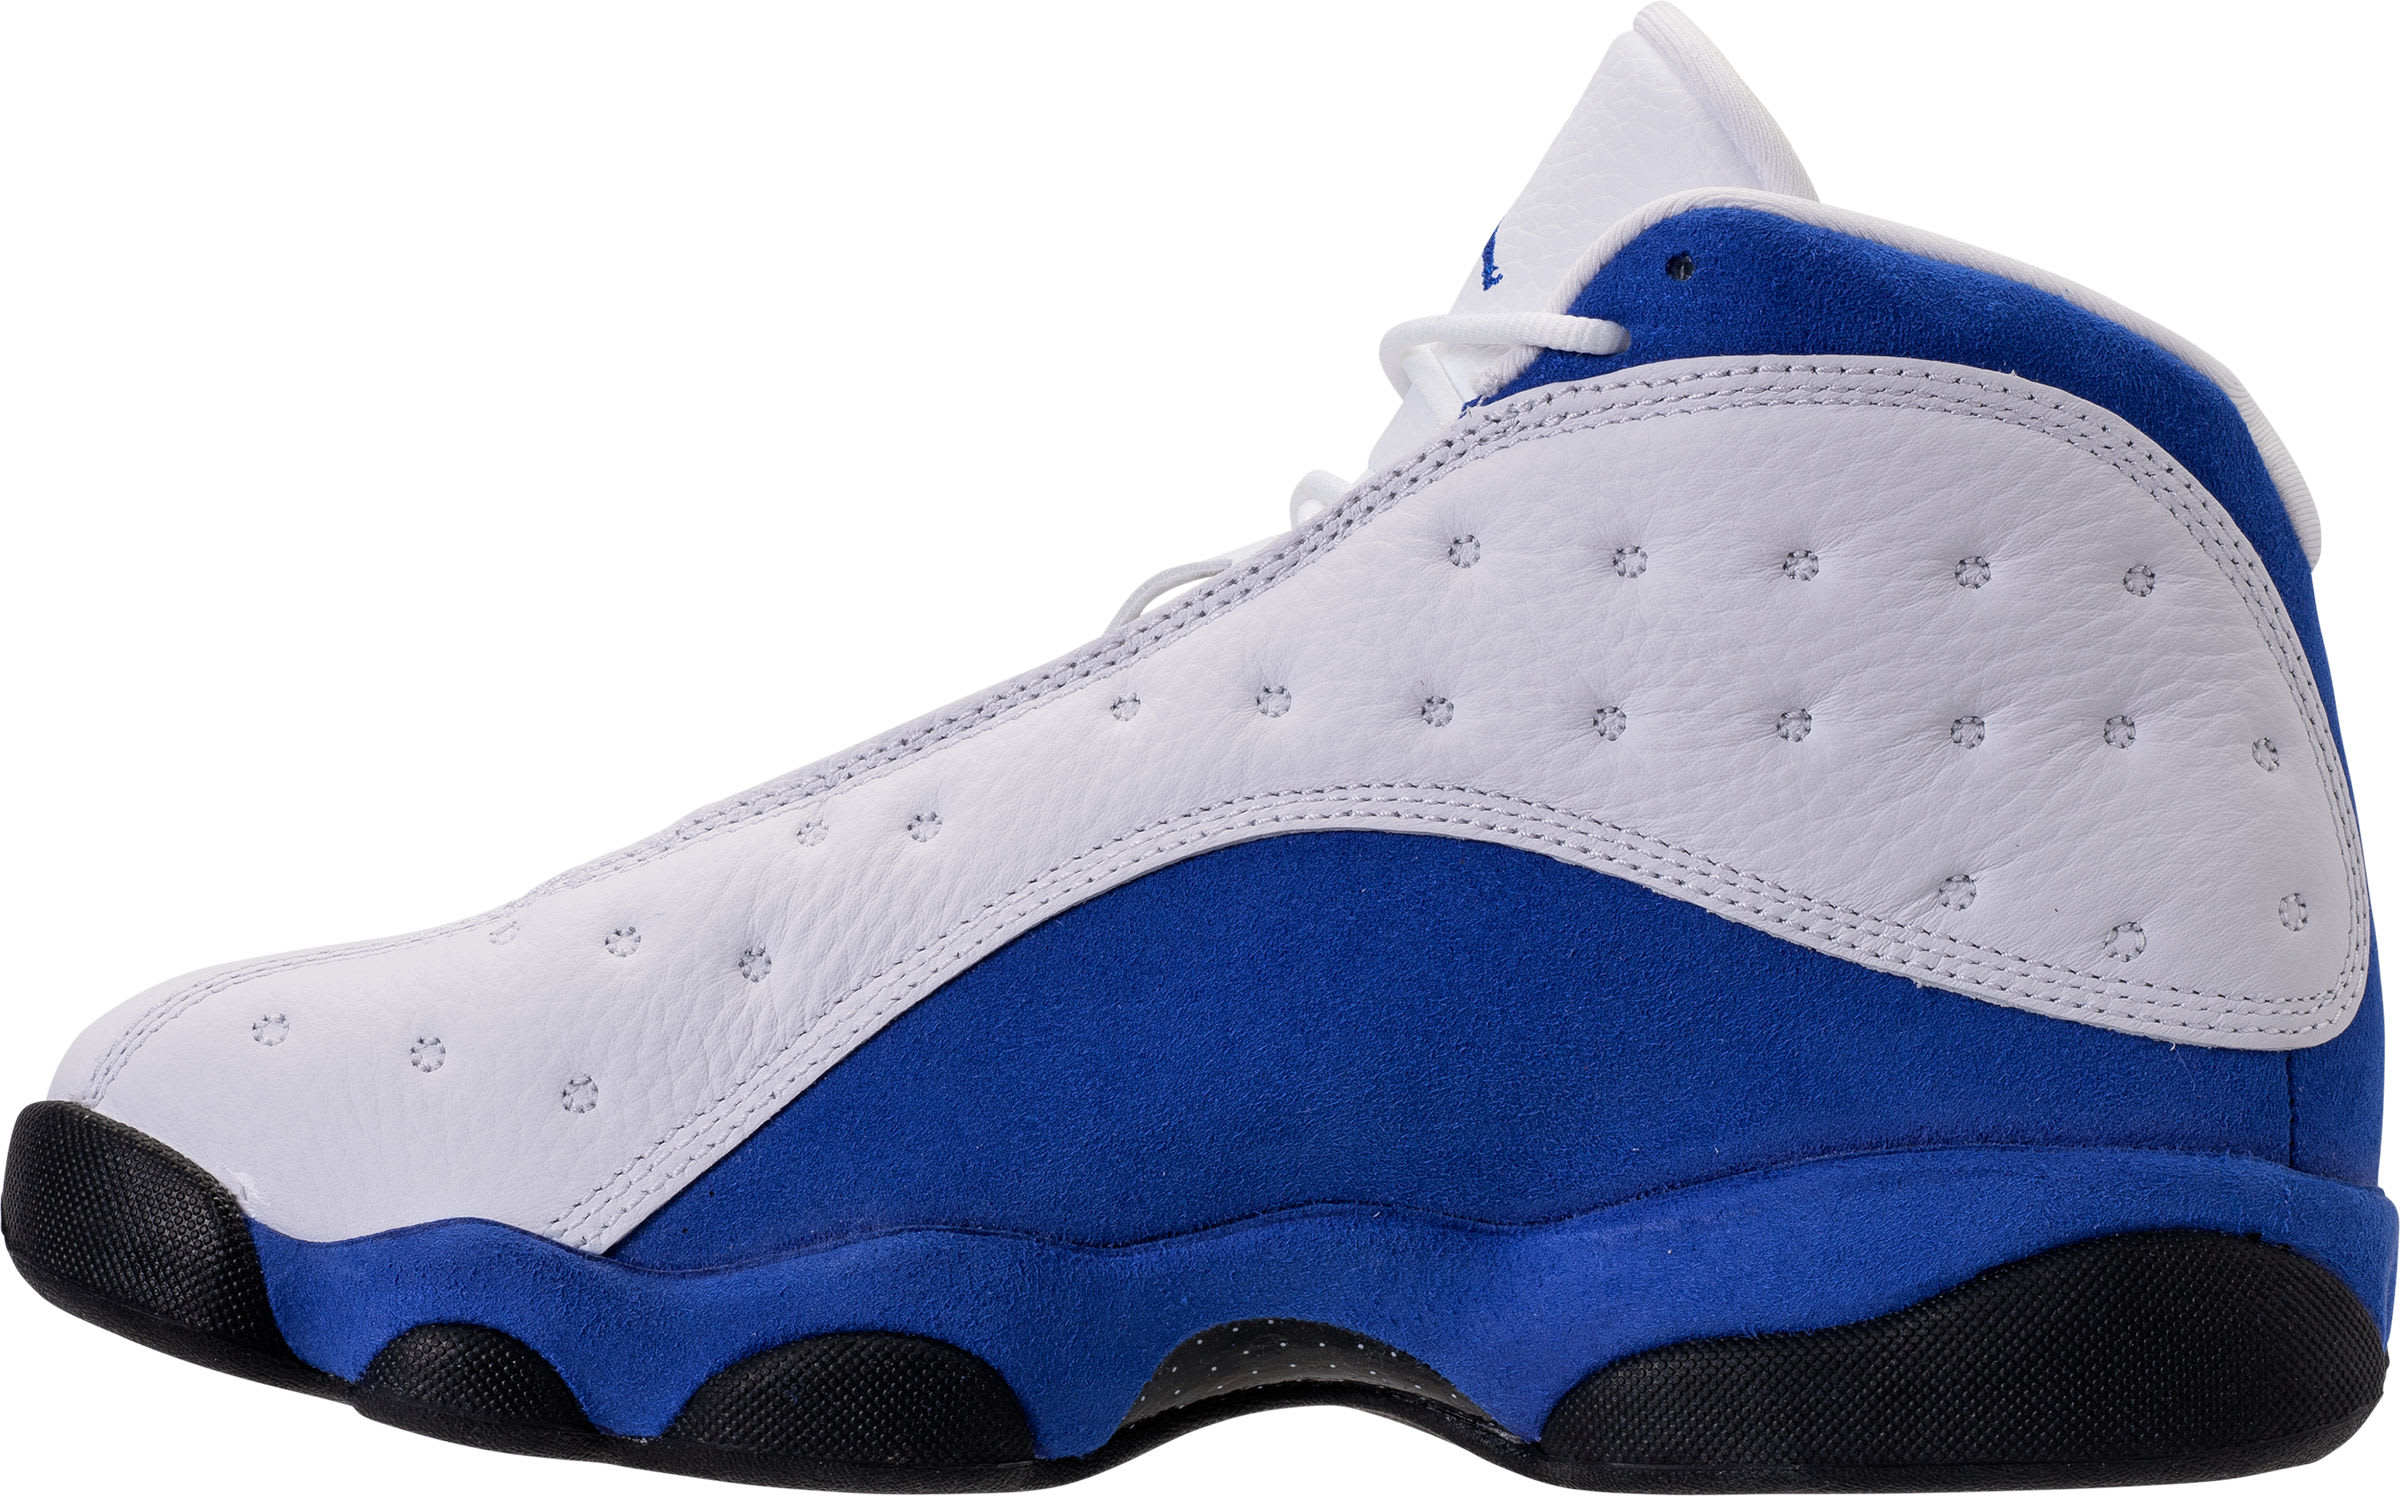 6a076841ea29 ... 2018 22fbc 2b832 usa air jordan 13 xiii hyper royal q rich release date 414571  117 medial 37b09 24aba best price men nike air jordan 13 xiii retro white  ...